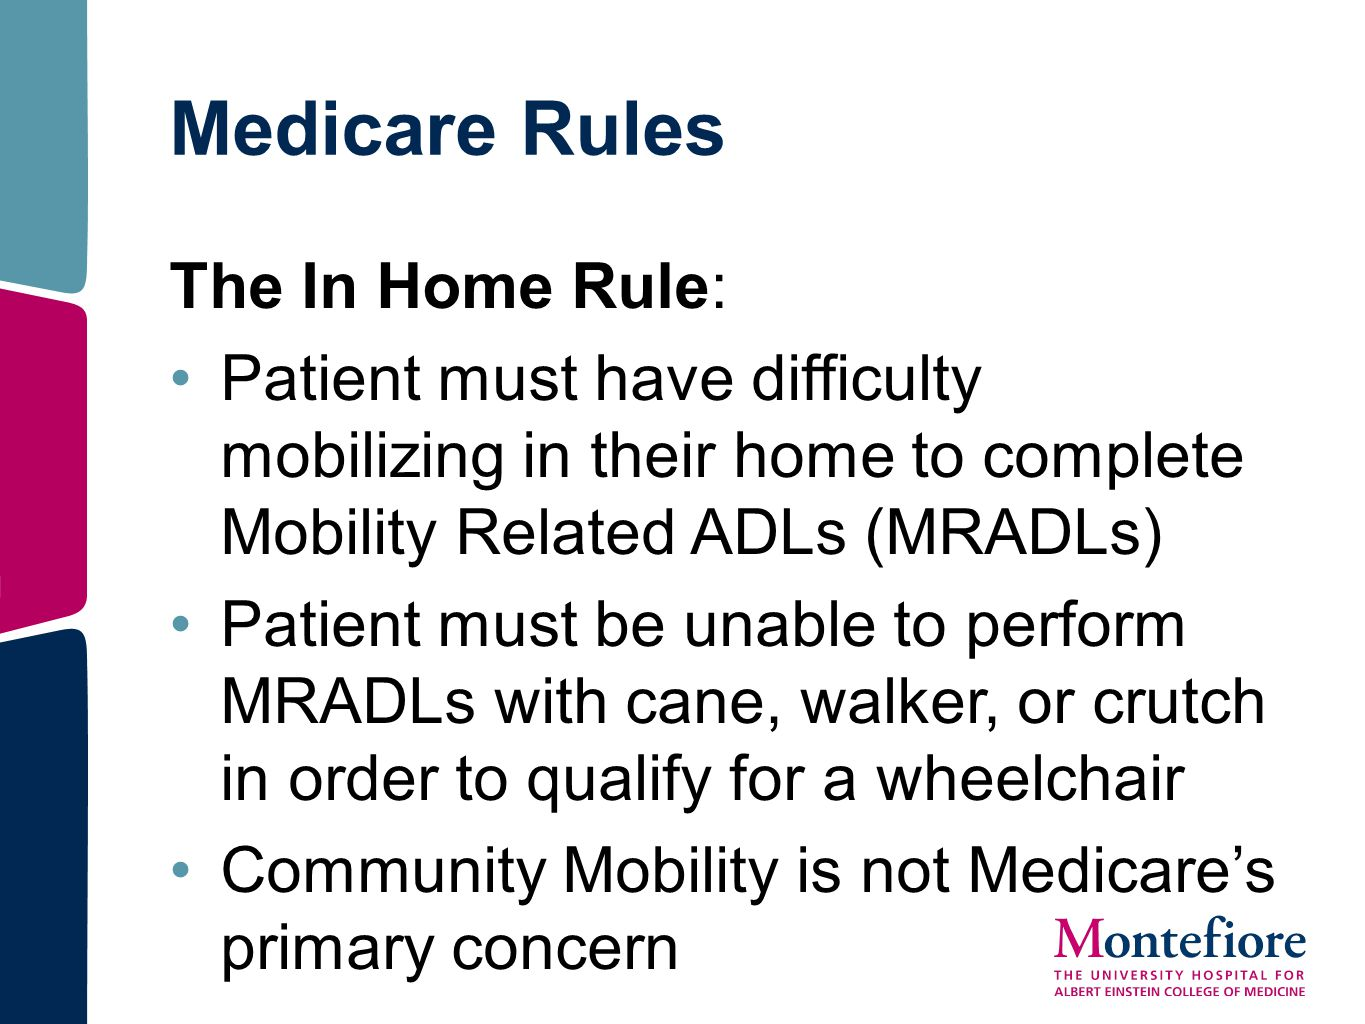 Medicare Rules The In Home Rule: Patient must have difficulty mobilizing in their home to complete Mobility Related ADLs (MRADLs) Patient must be unab